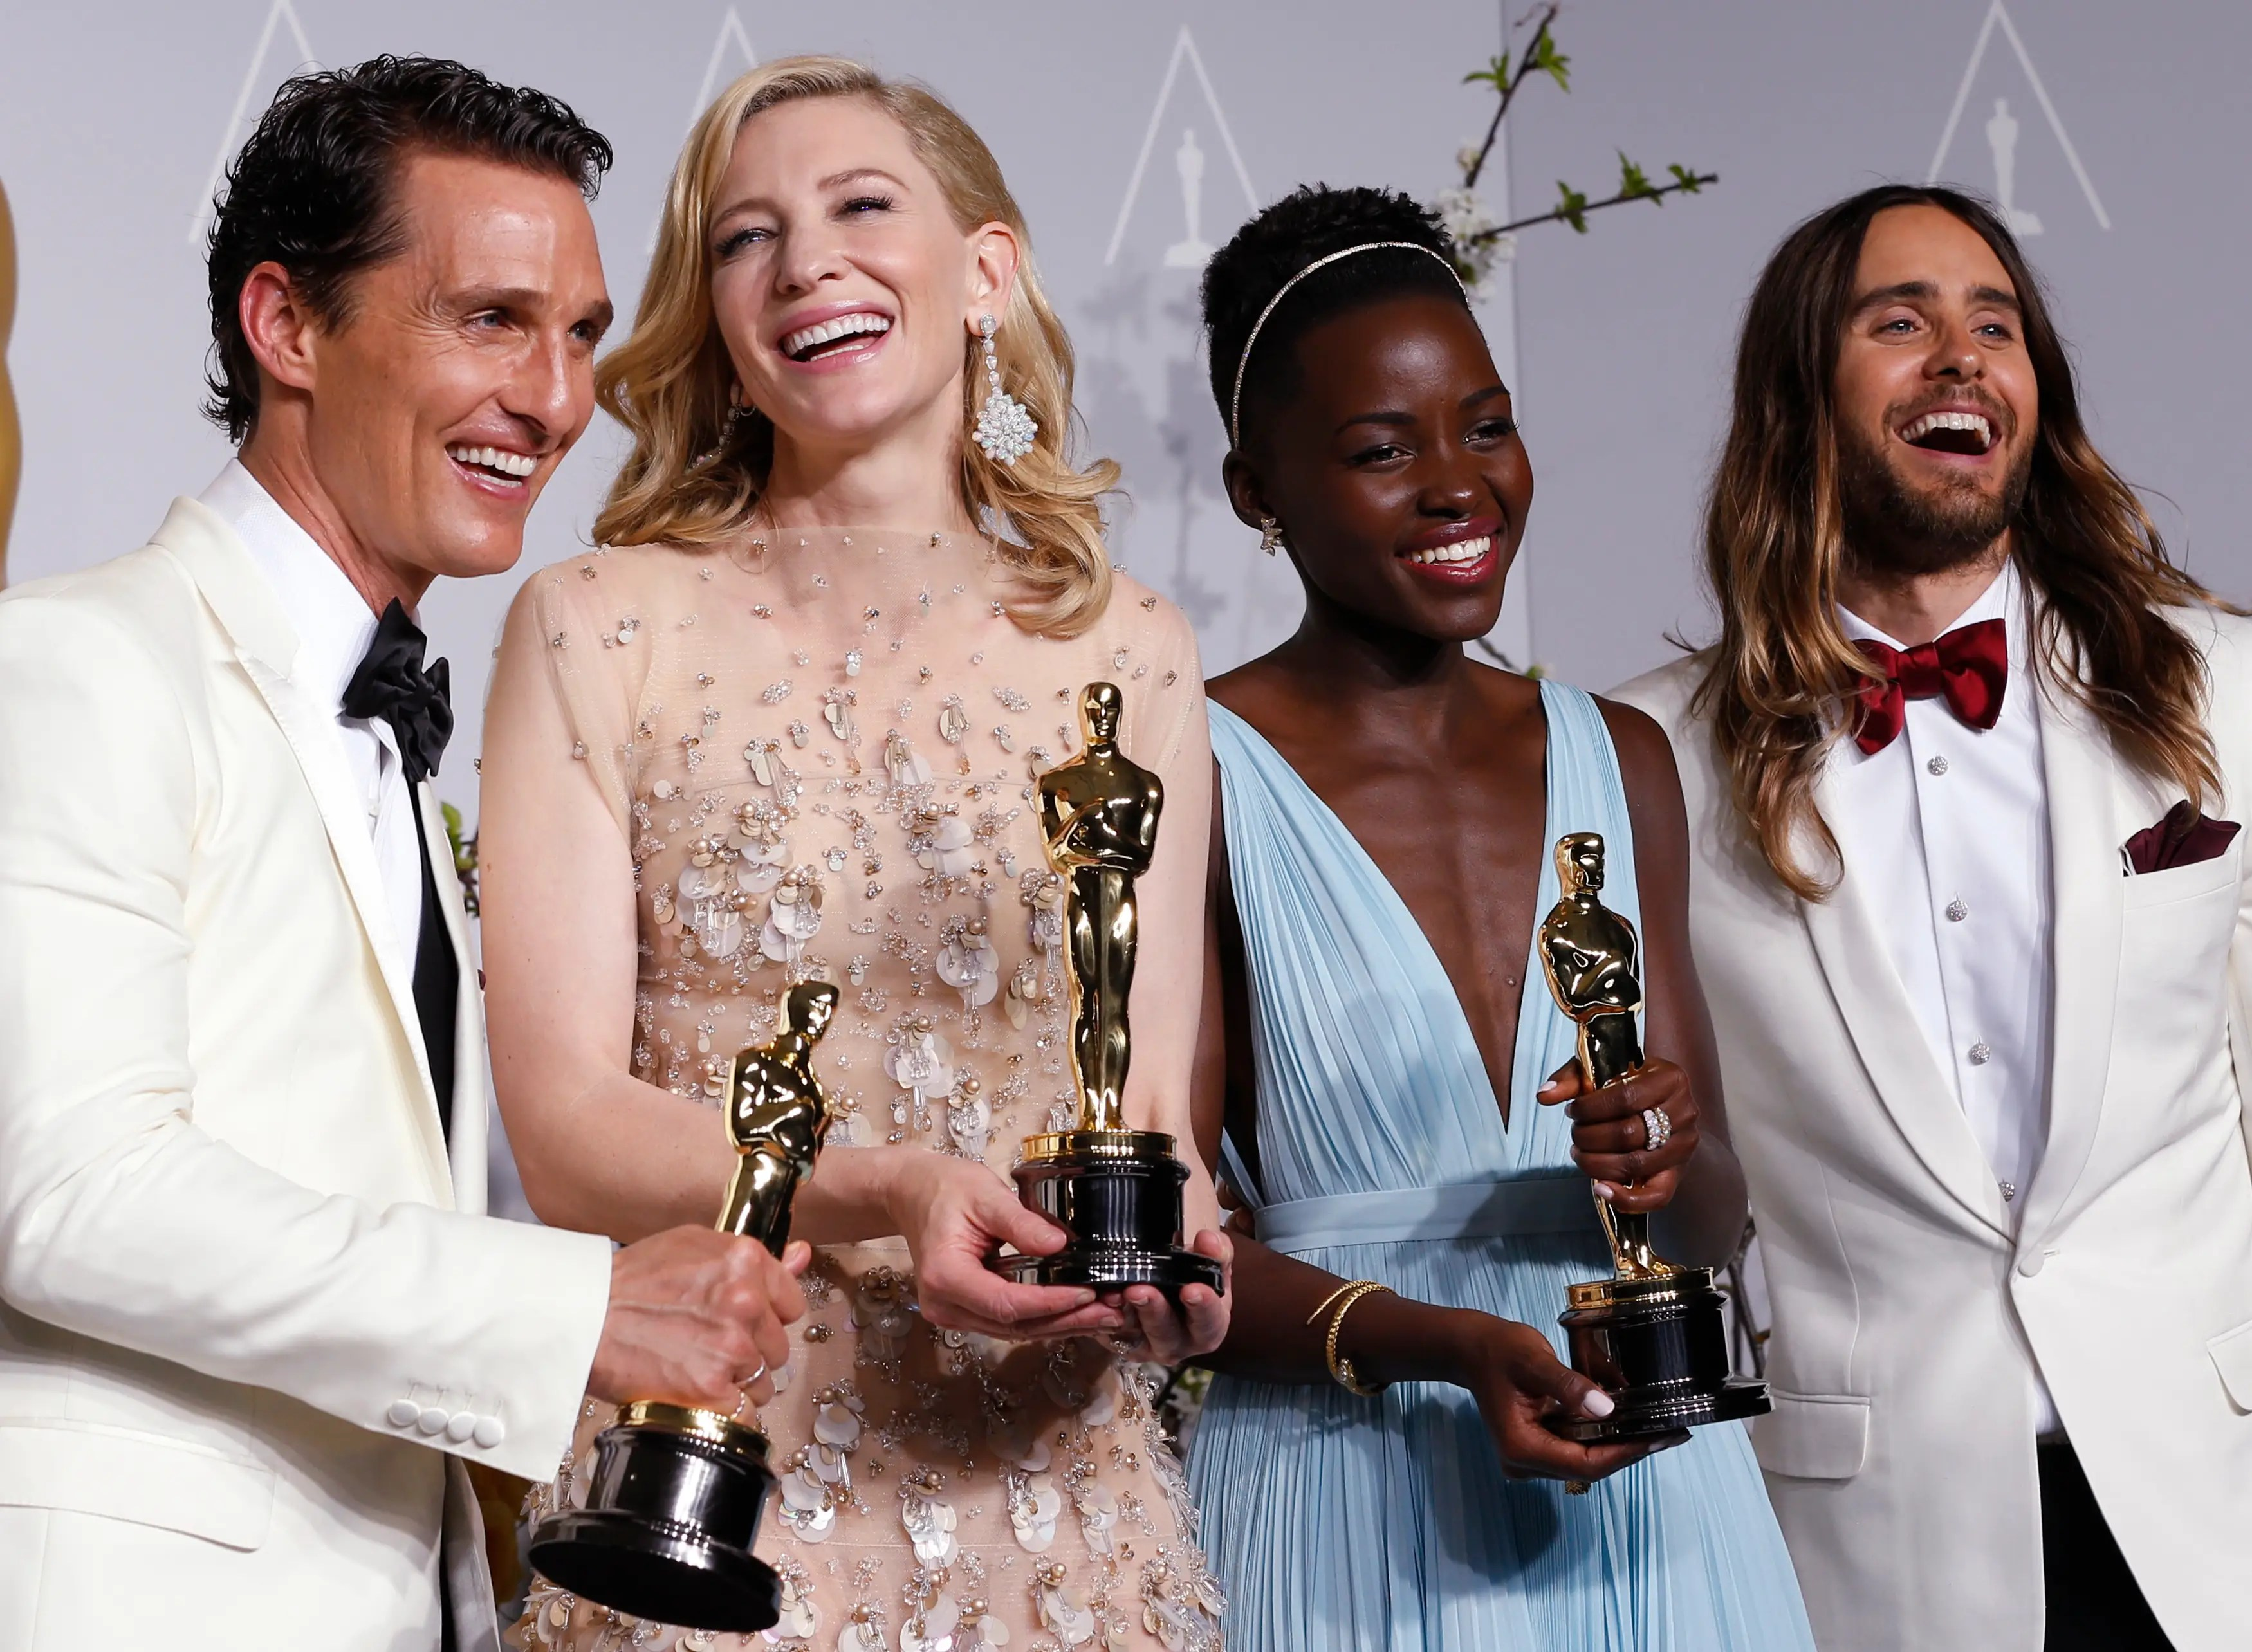 Here are the four big winners from the night: Matthew McConaughey (Best Actor), Cate Blanchett (Best Actress), Lupita Nyong'o (Best Supporting Actress), and Jared Leto (Best Supporting Actor).